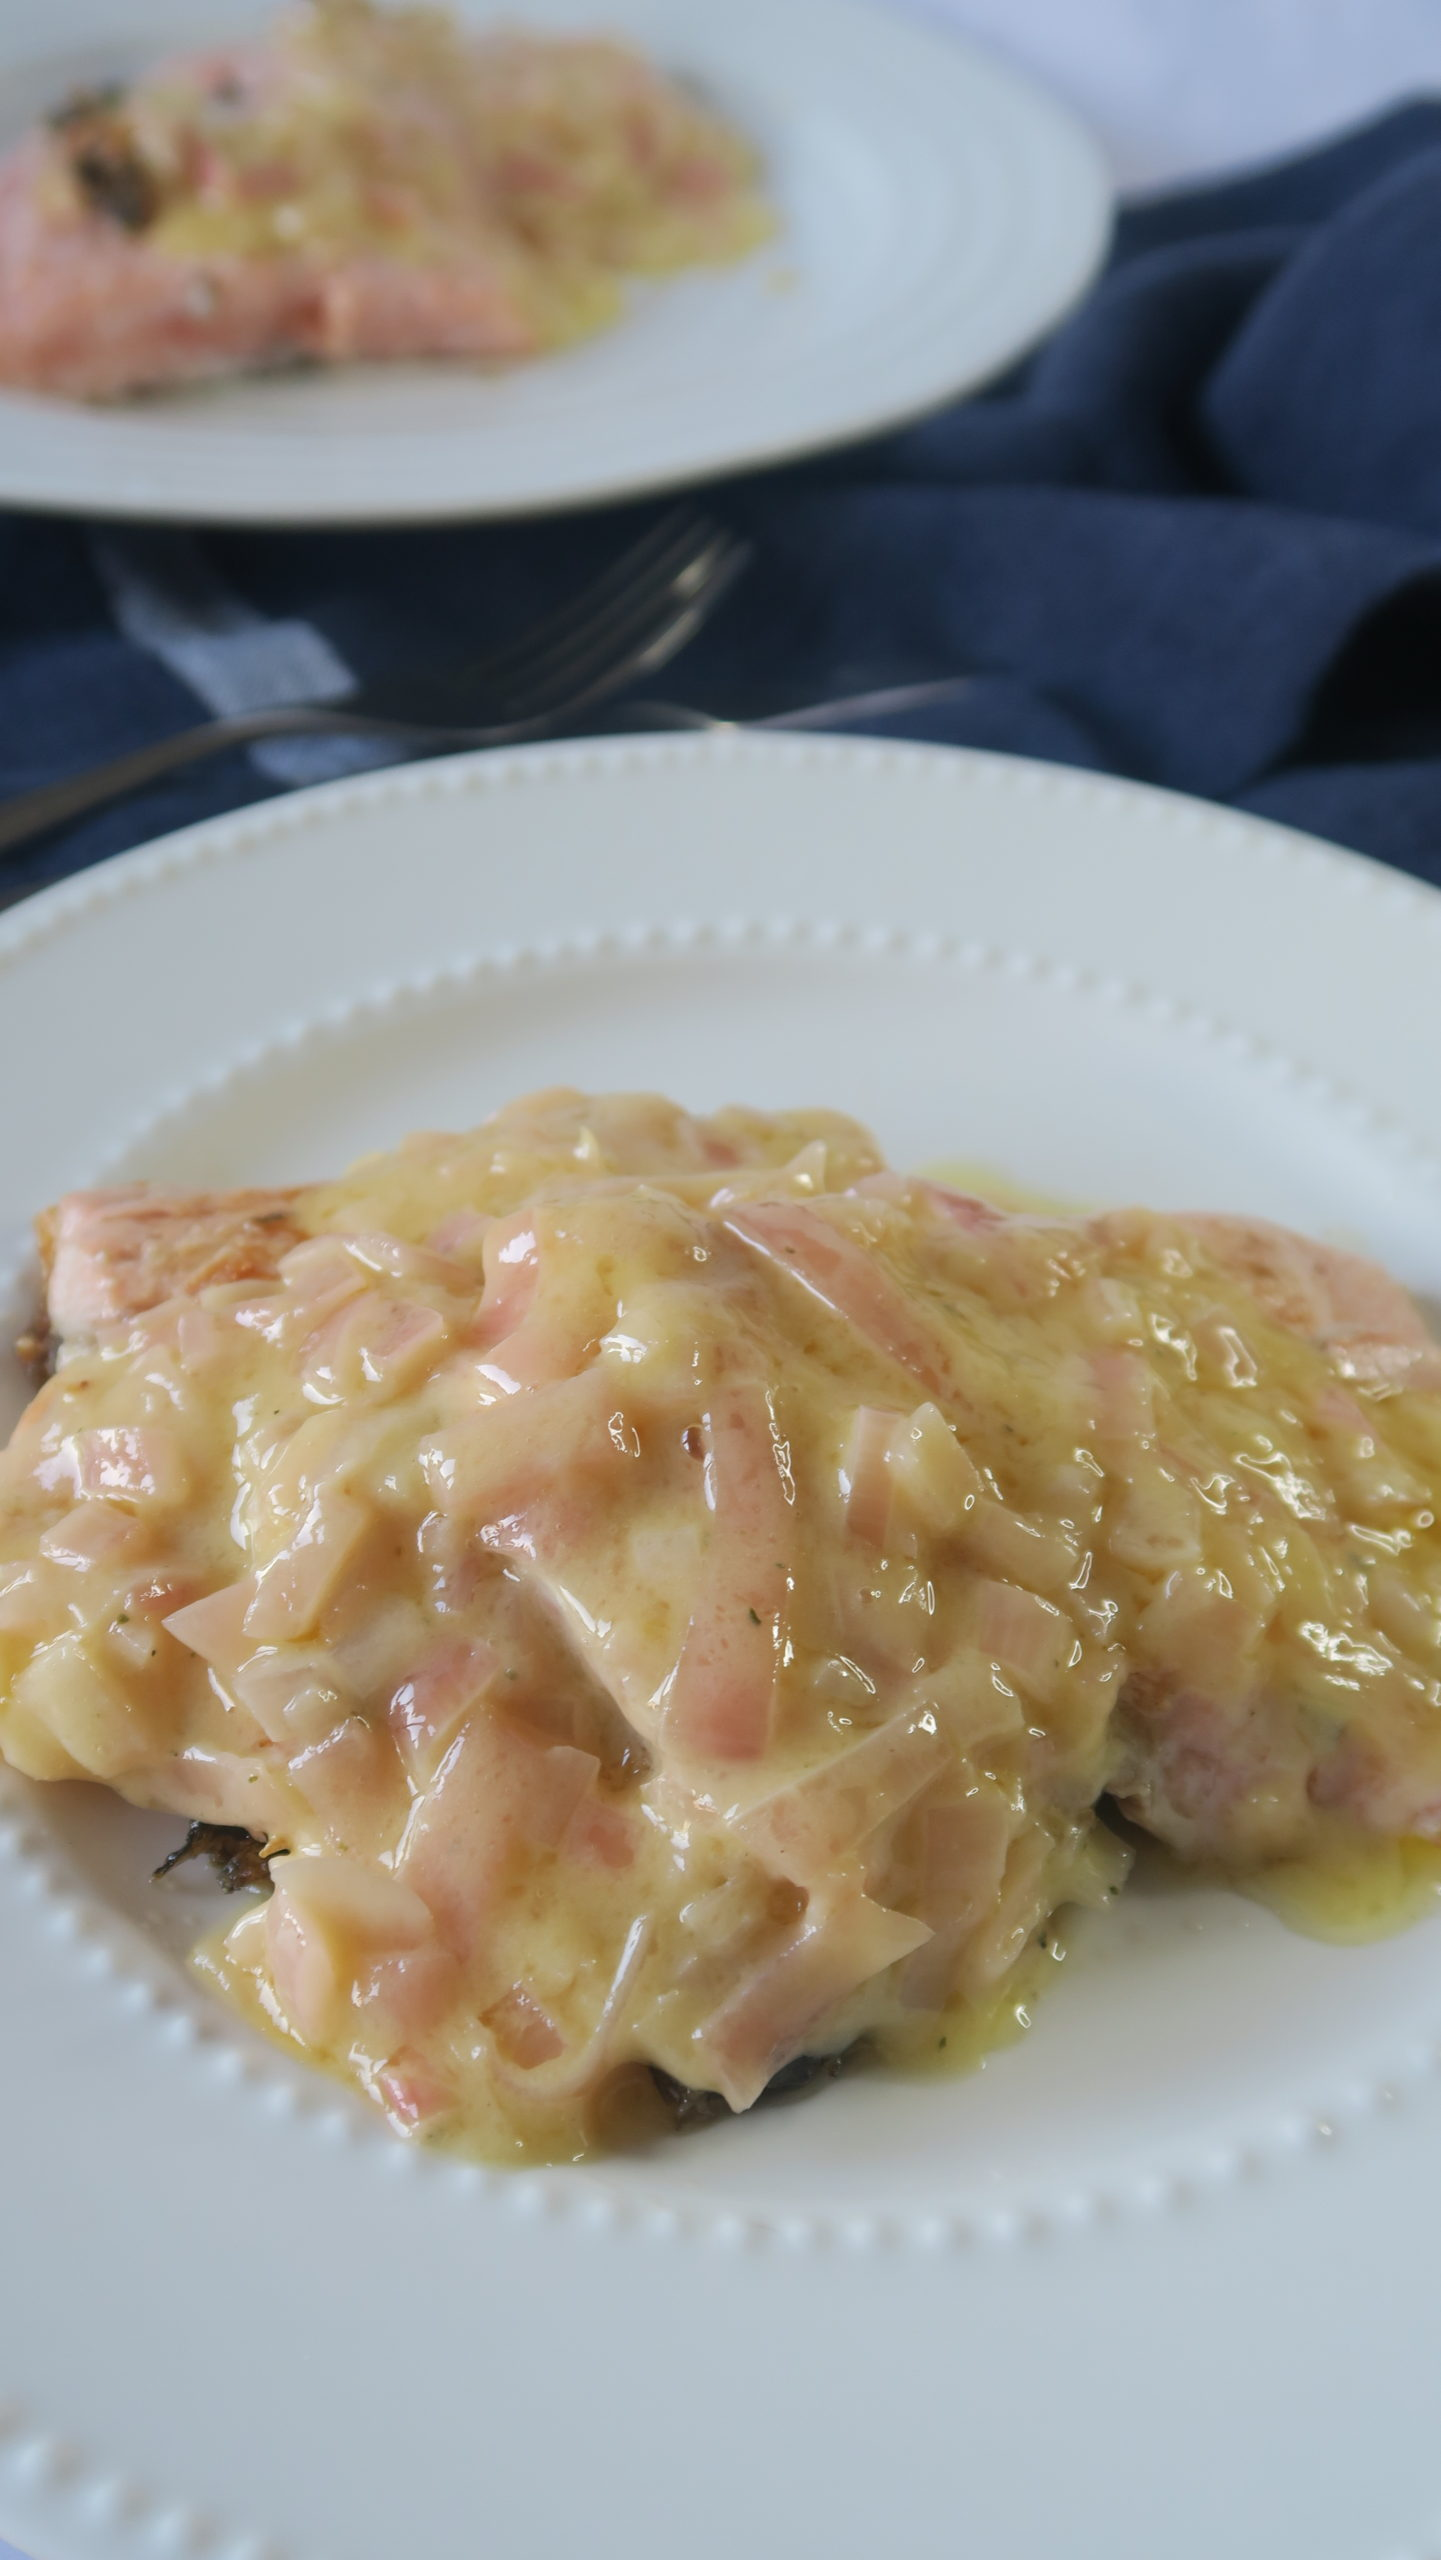 A white plate on top of navy linen with two pieces of salmon covered in creamy butter sauce